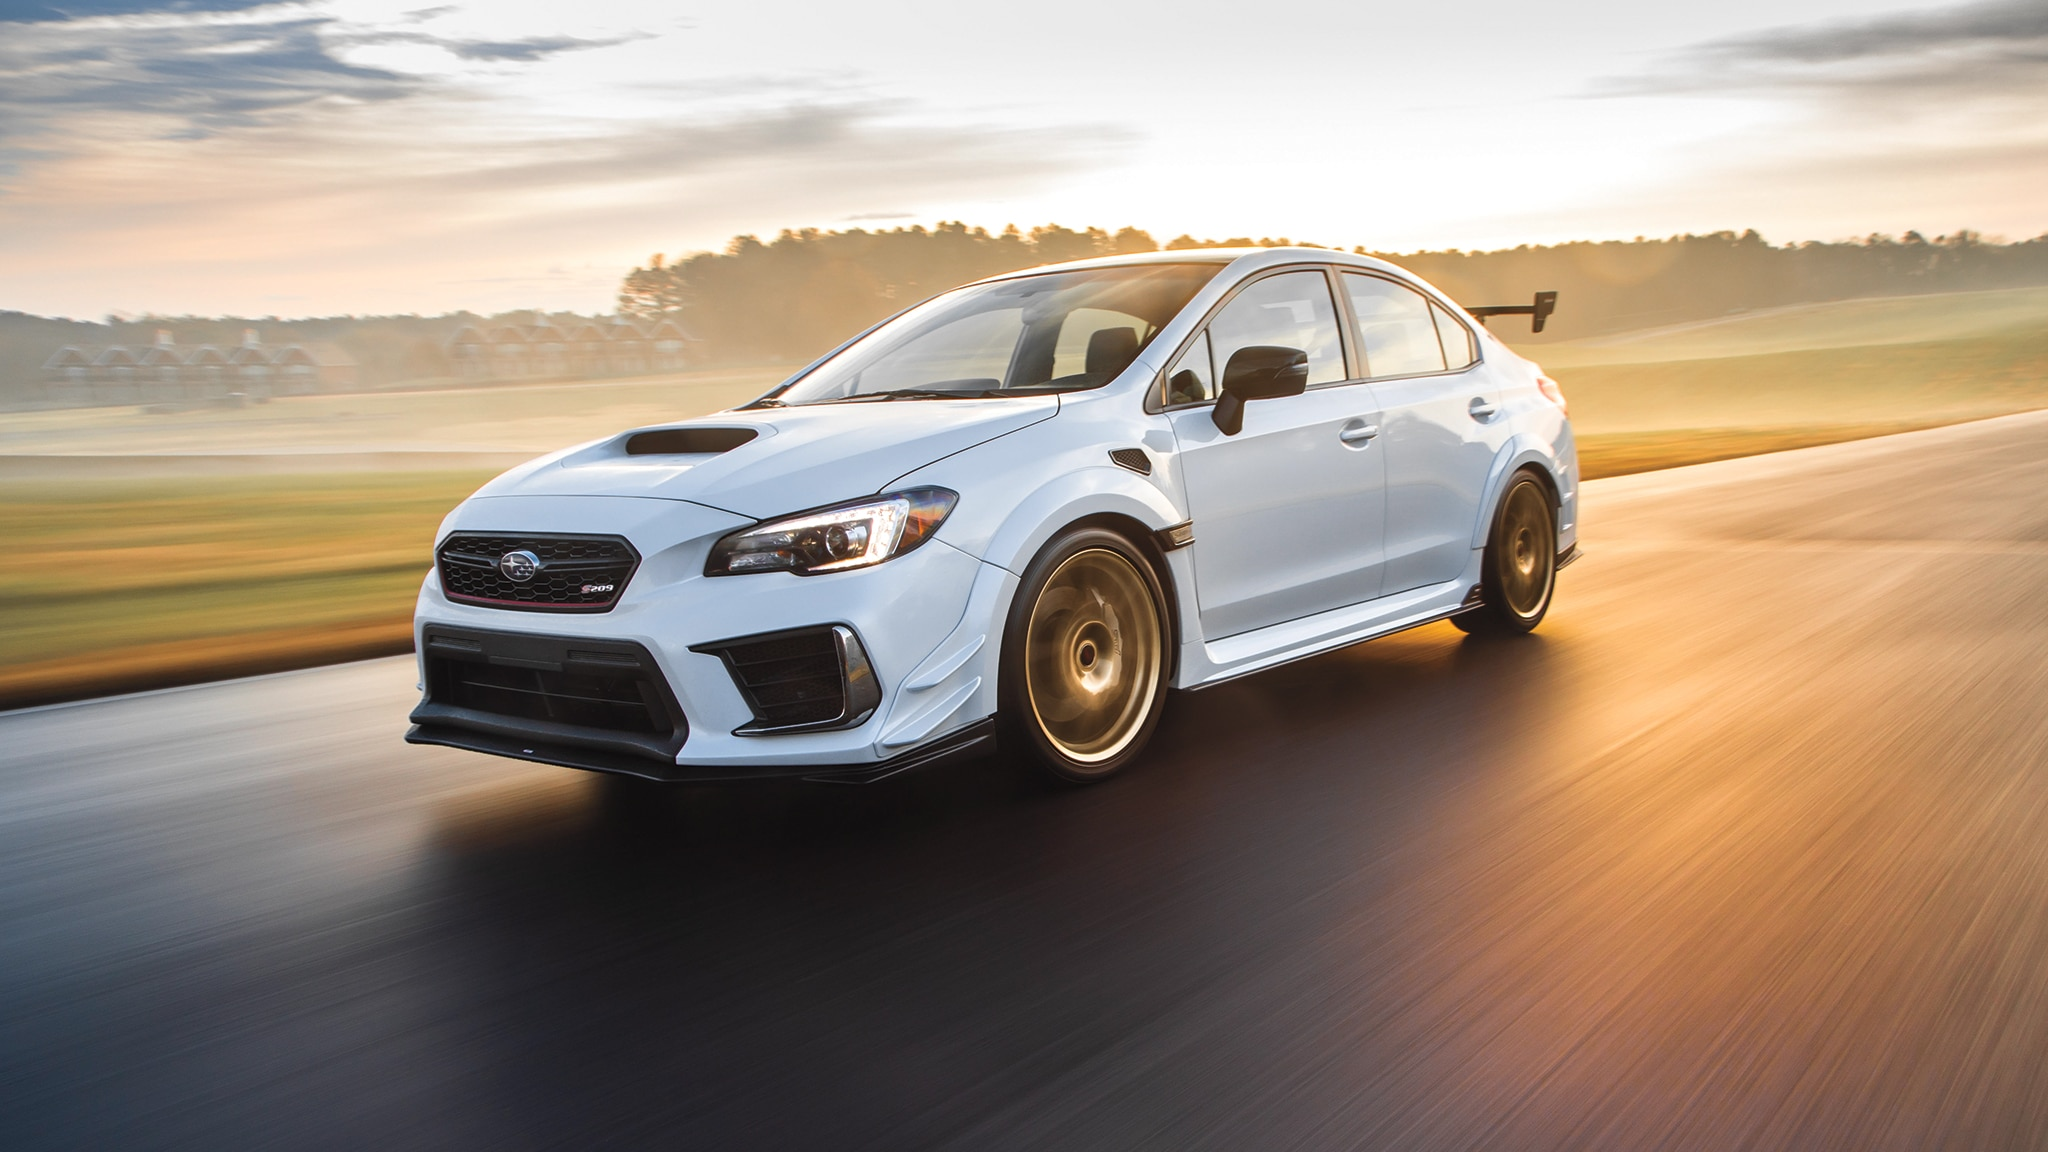 Subaru New Cars for 2020: What You Need to Know